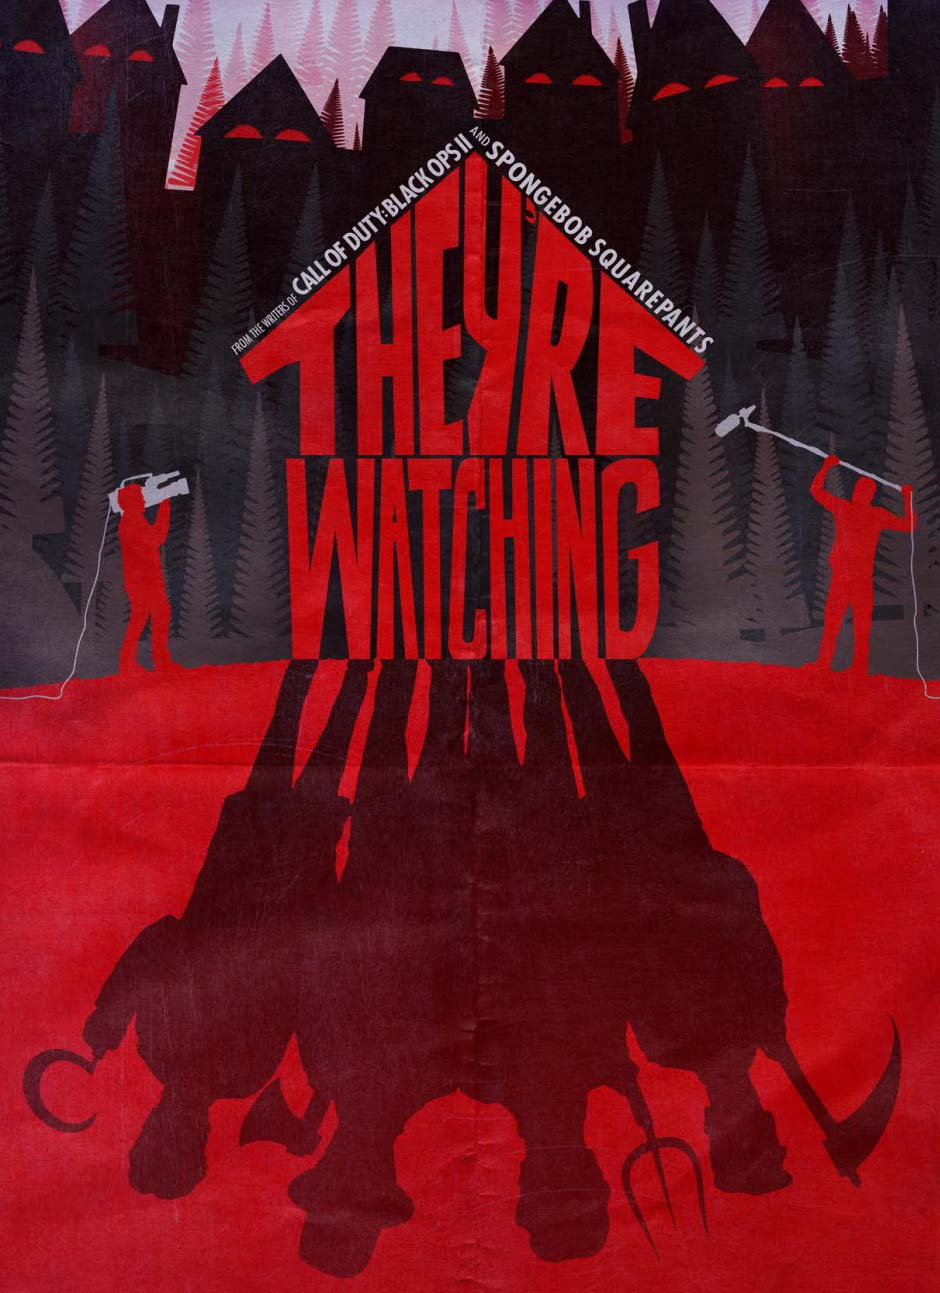 They're Watching 2016 Movie Watch Online Free